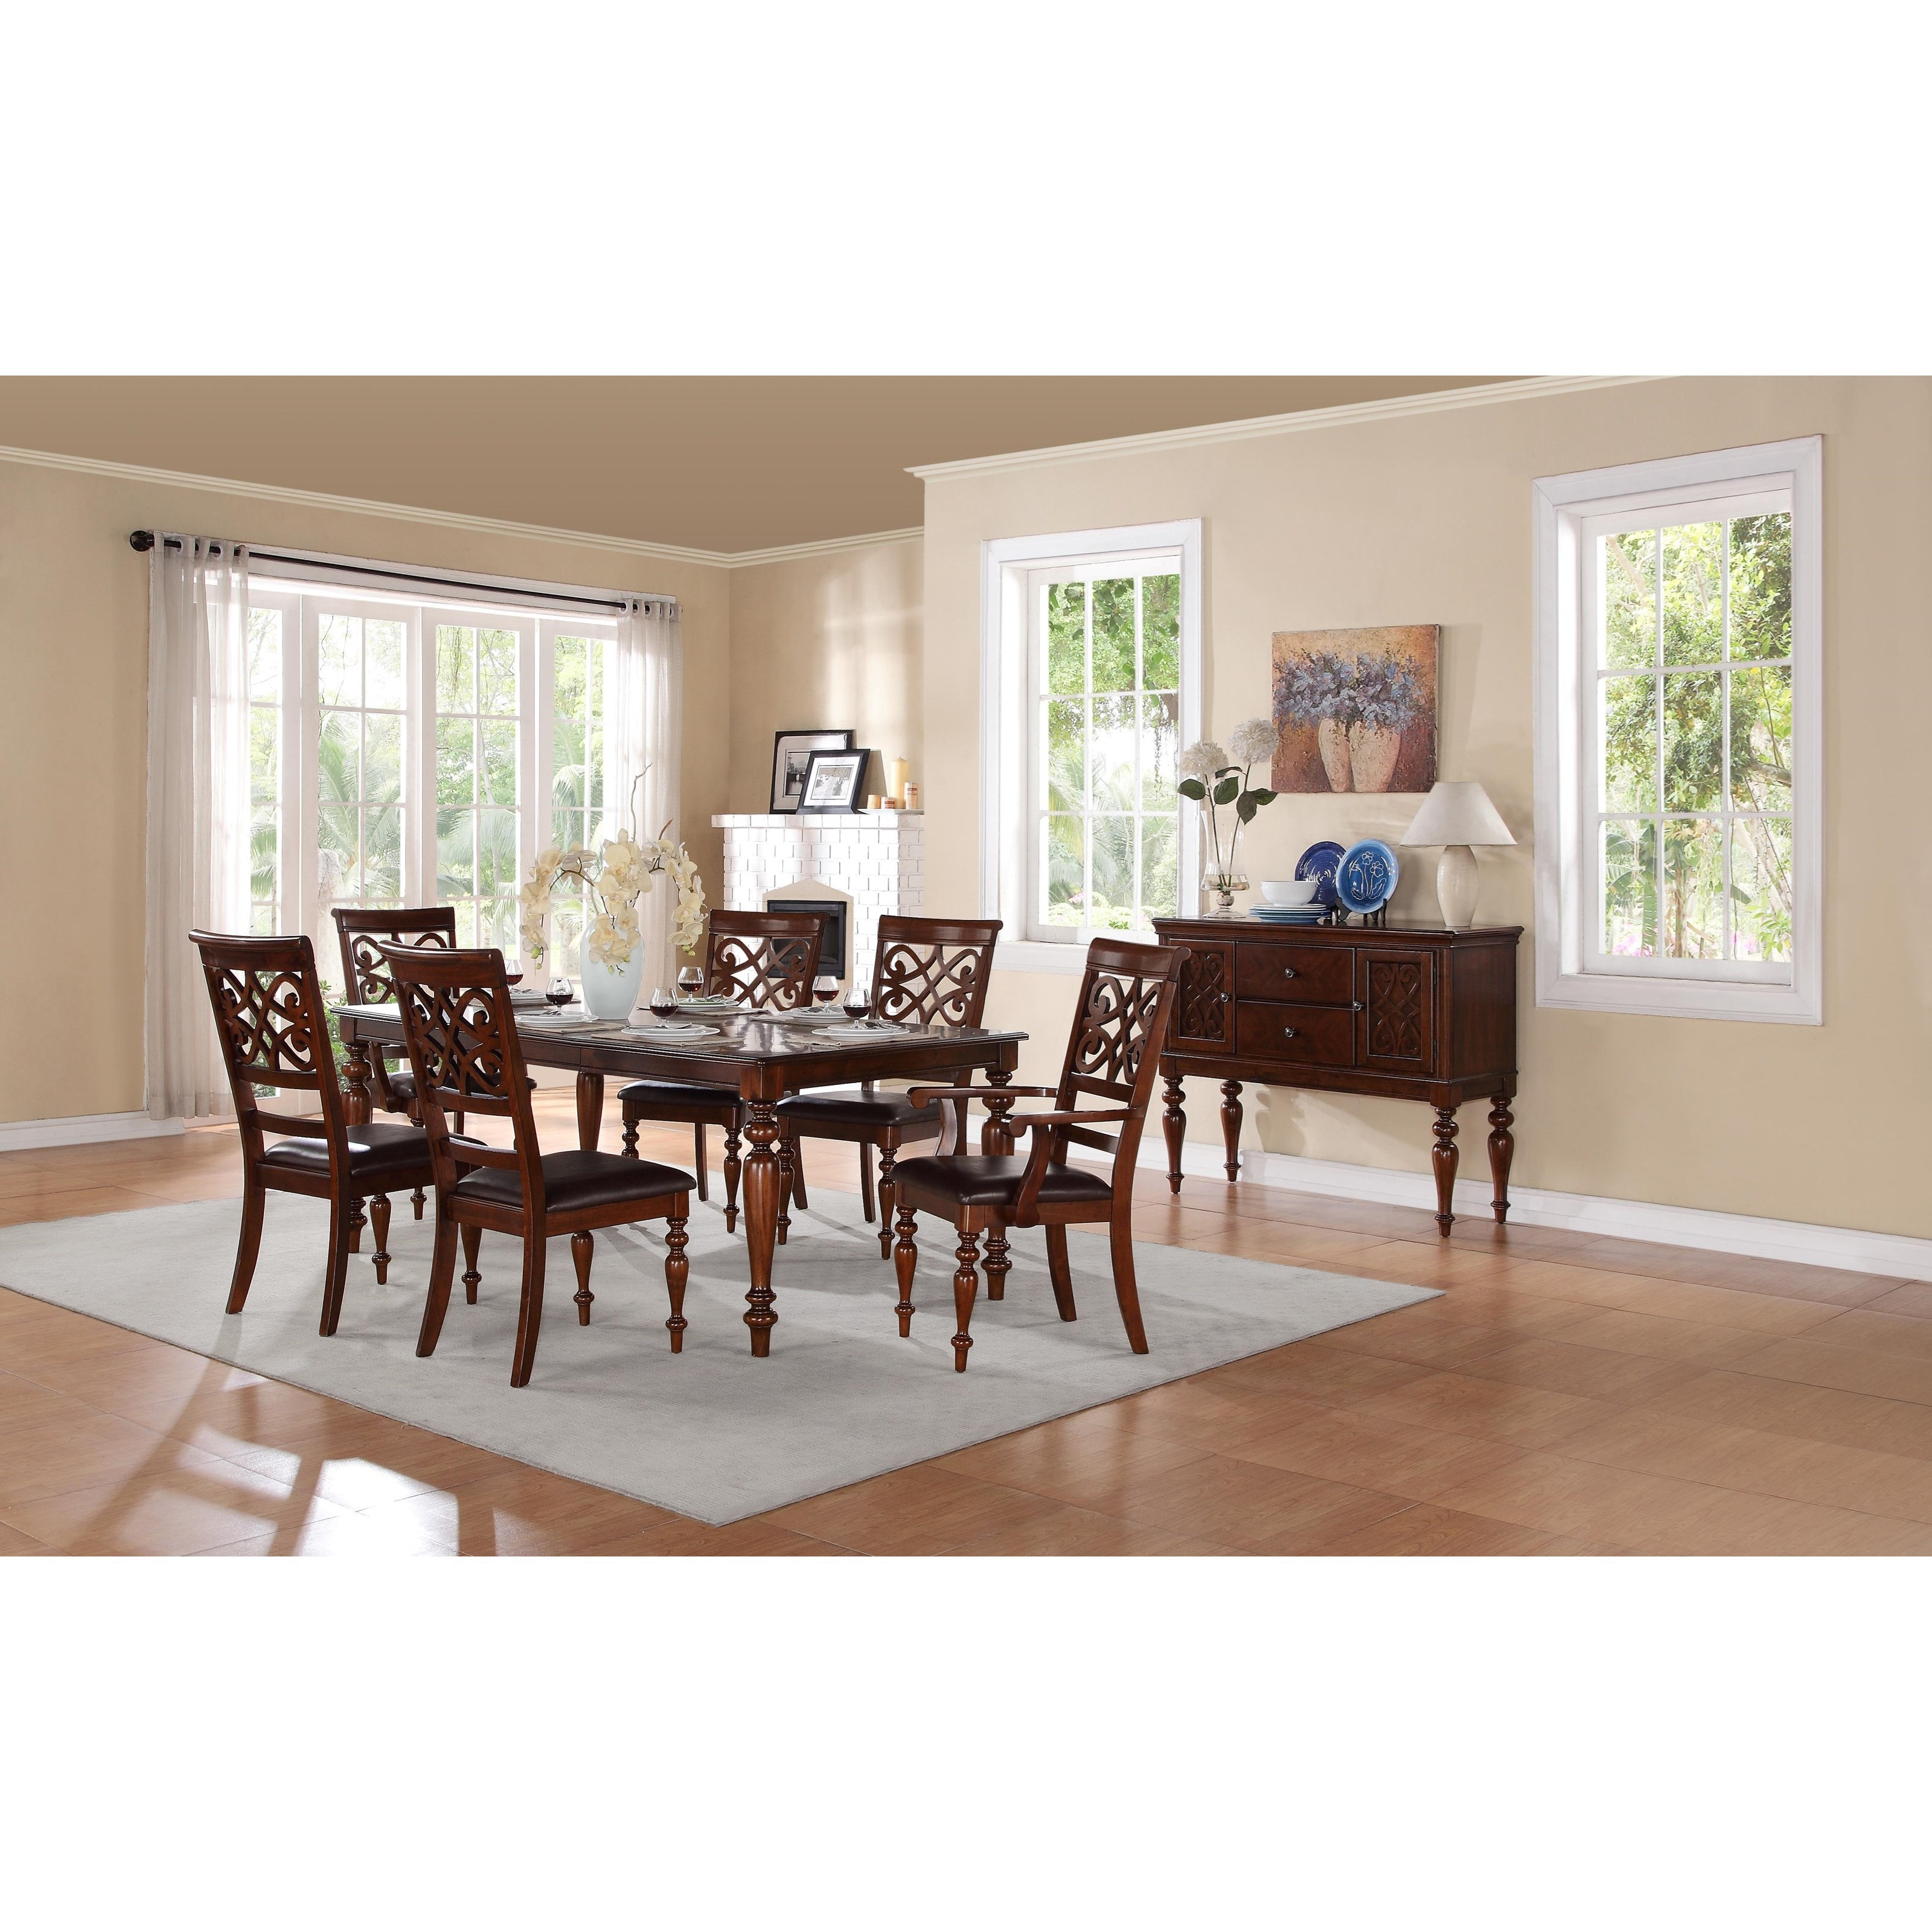 Homelegance creswell 5056 78 traditional formal dining for Formal wood dining table